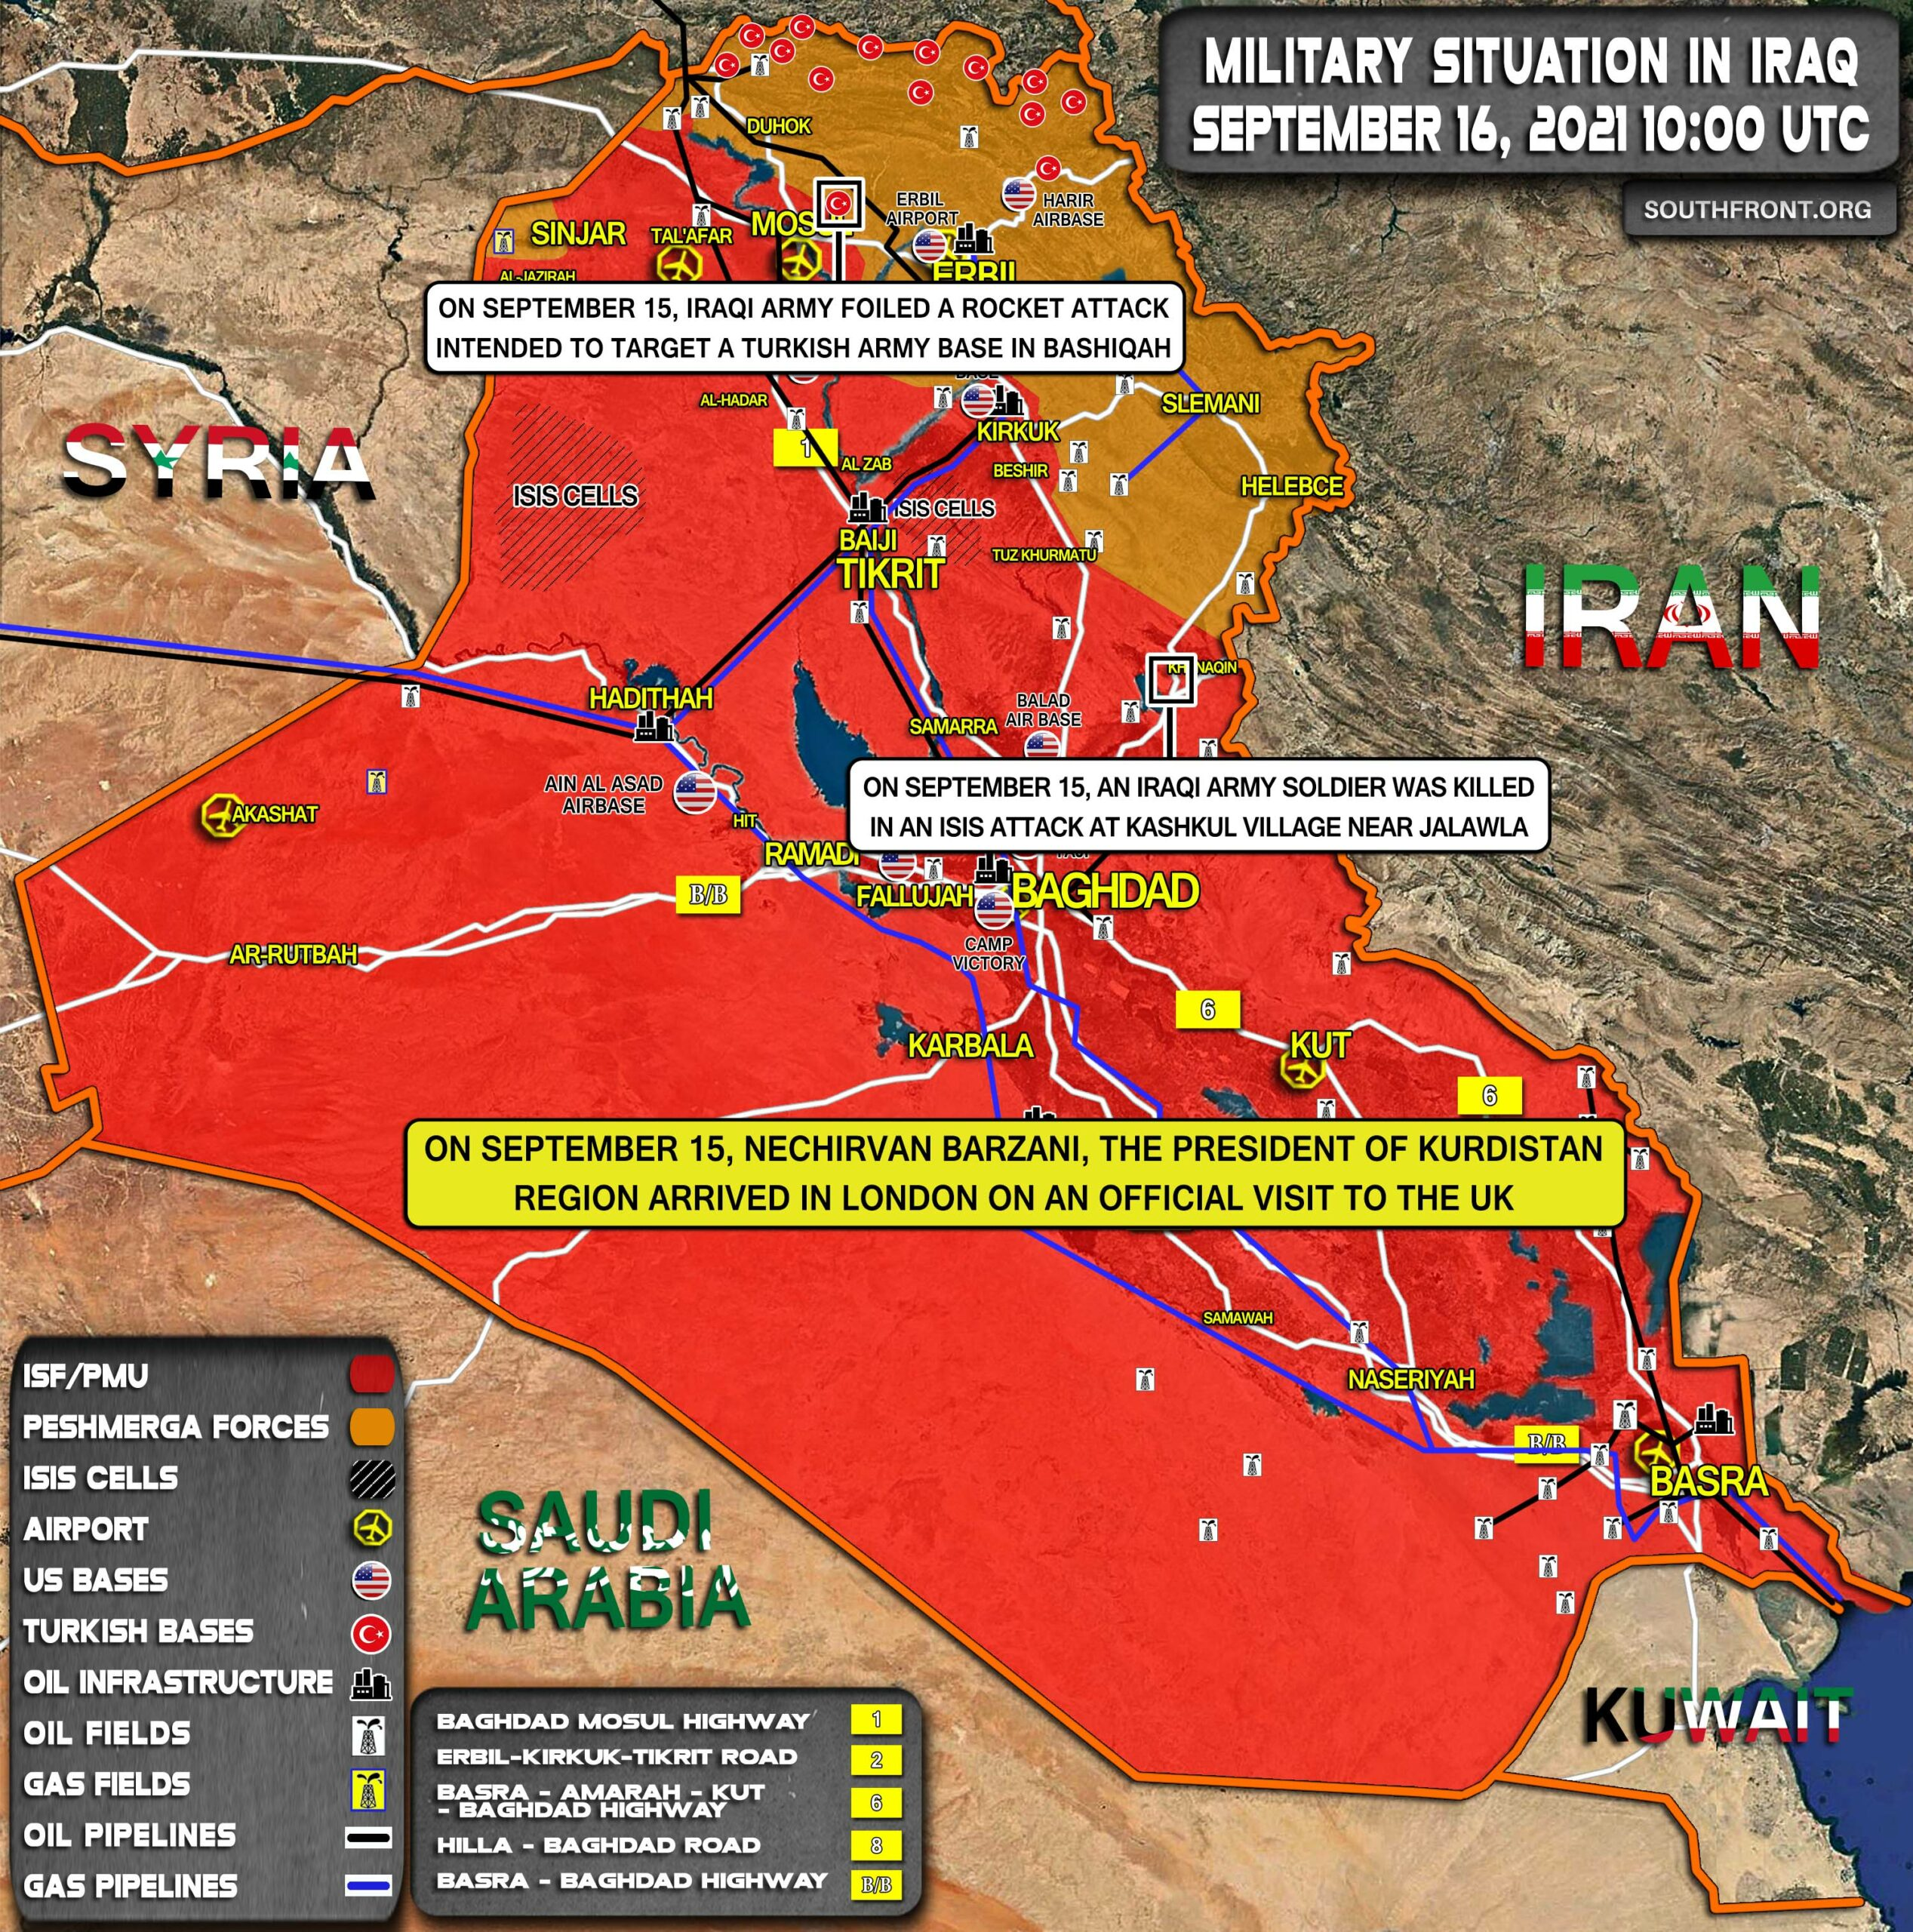 Military Situation In Iraq On September 16, 2021 (Map Update)